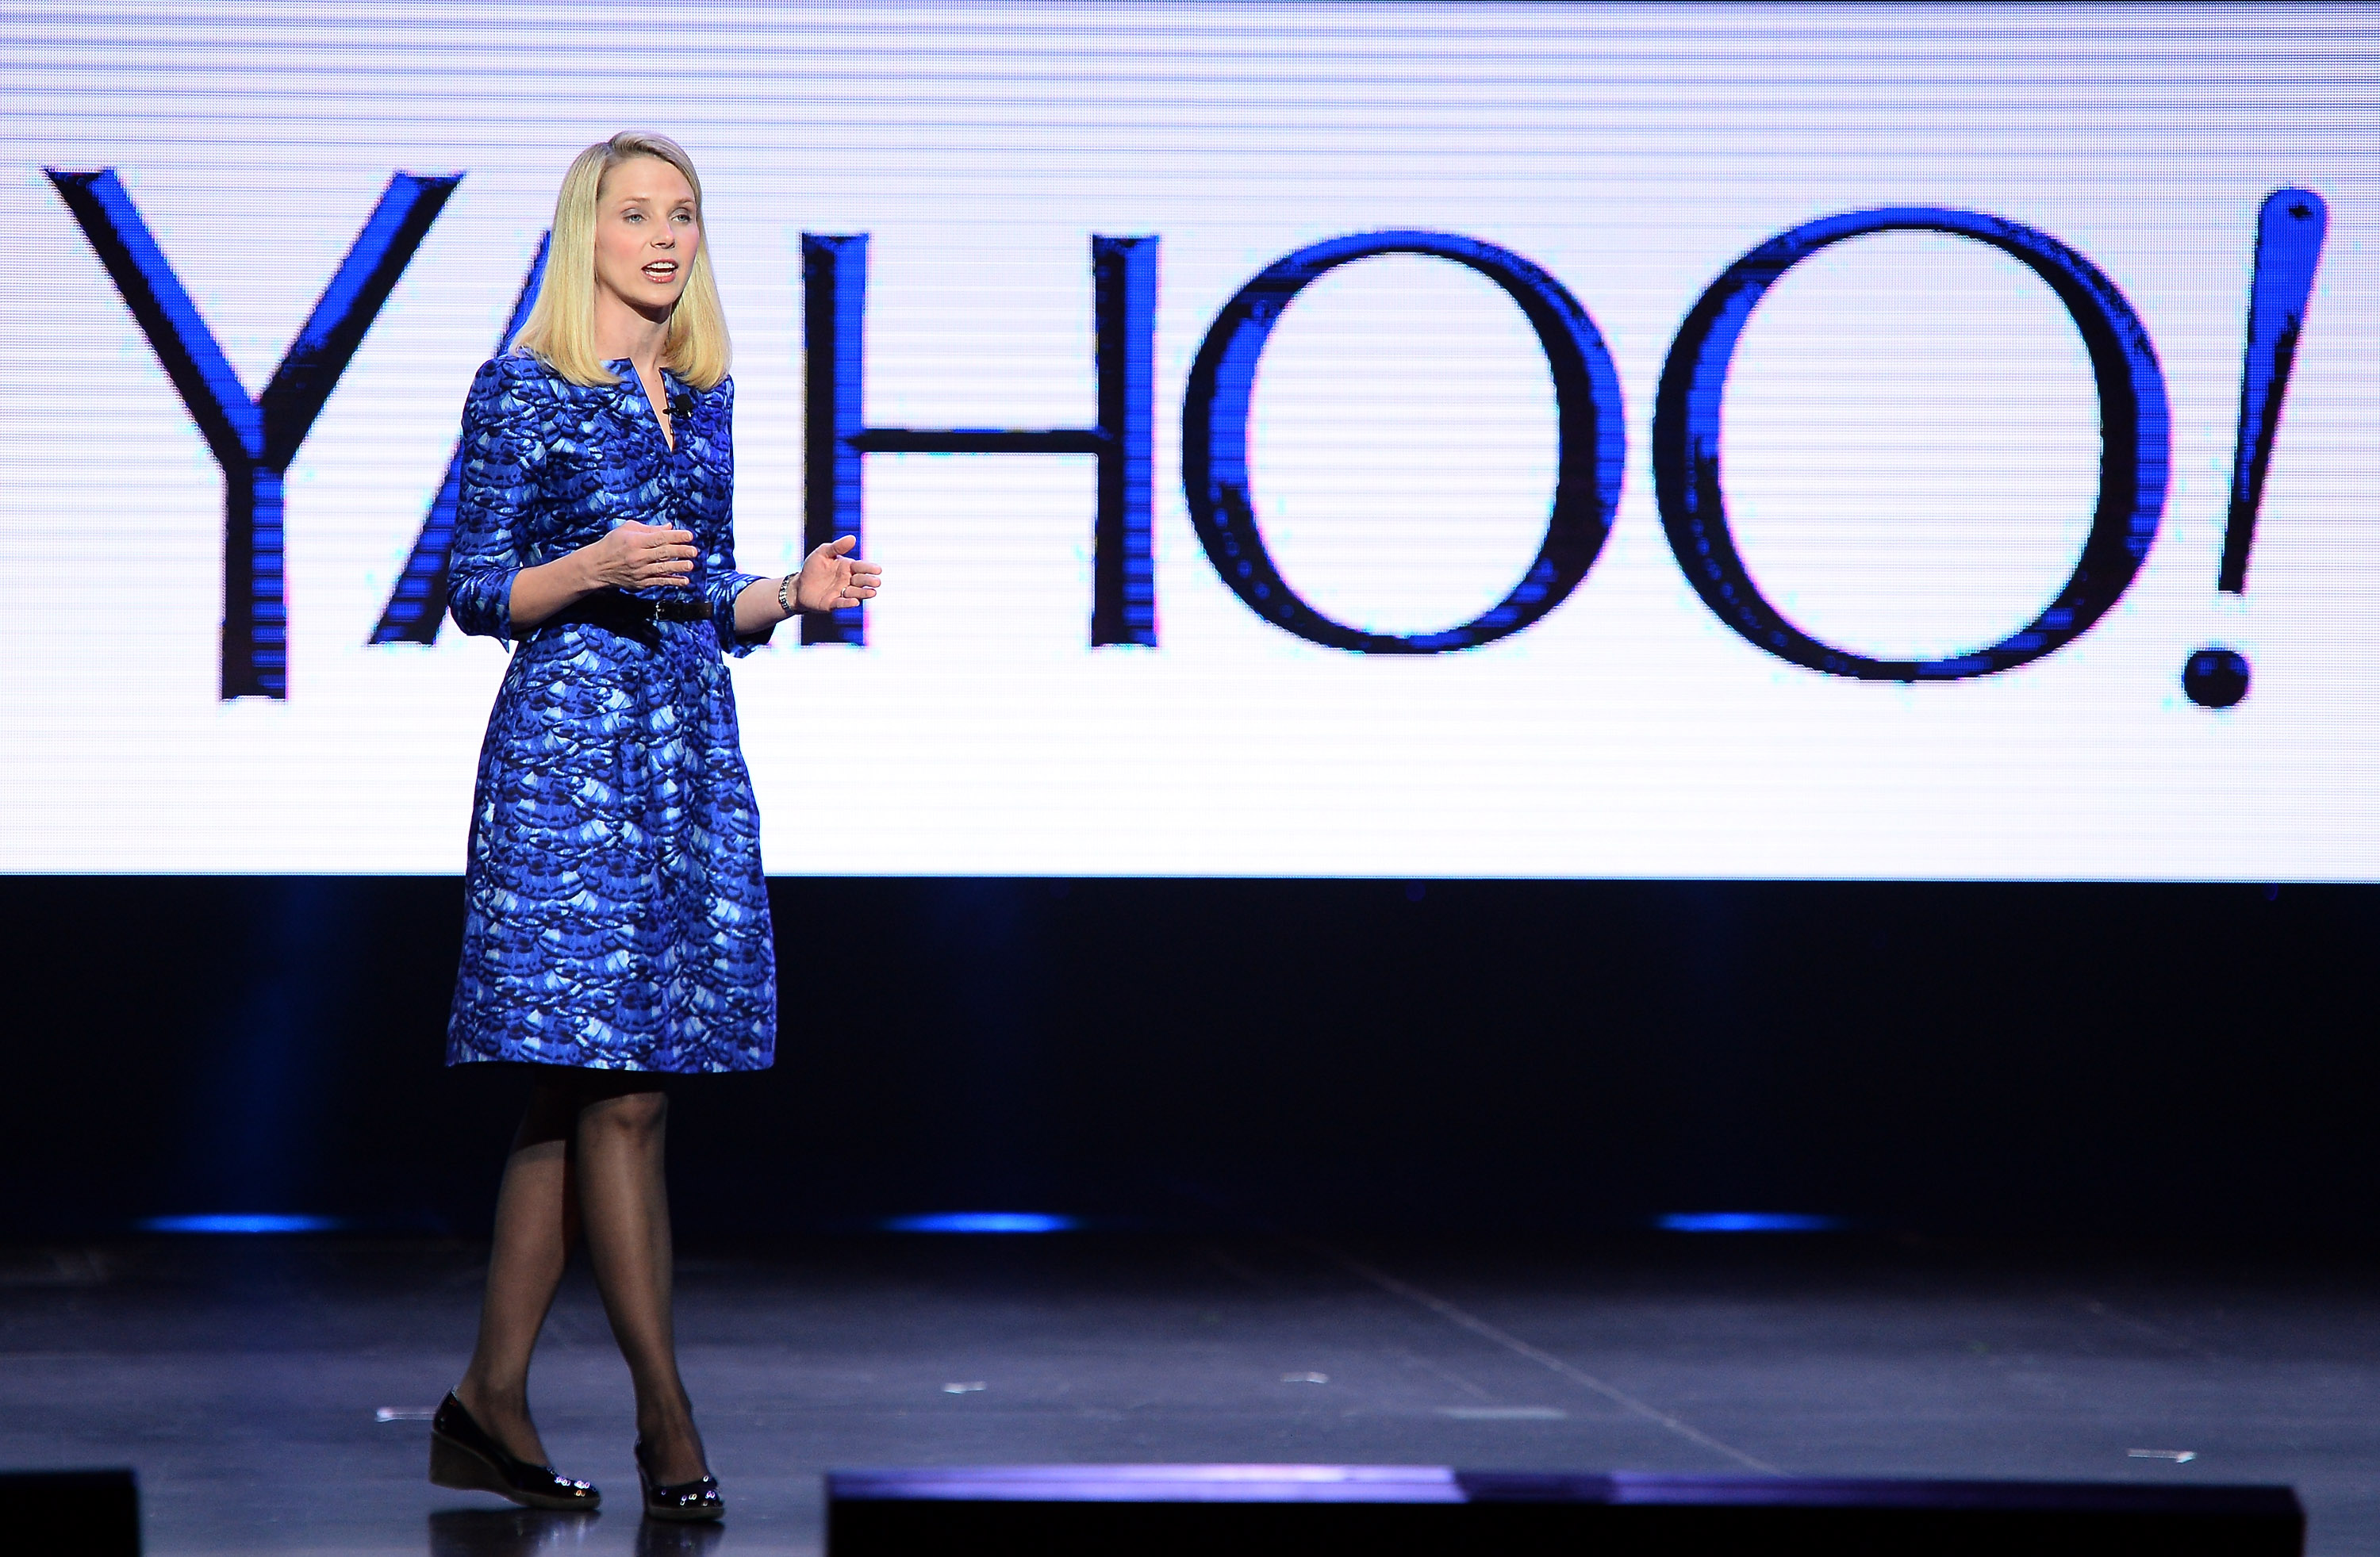 Yahoo! President and CEO Marissa Mayer delivers a keynote address at the 2014 International CES in Las Vegas, Nevada.